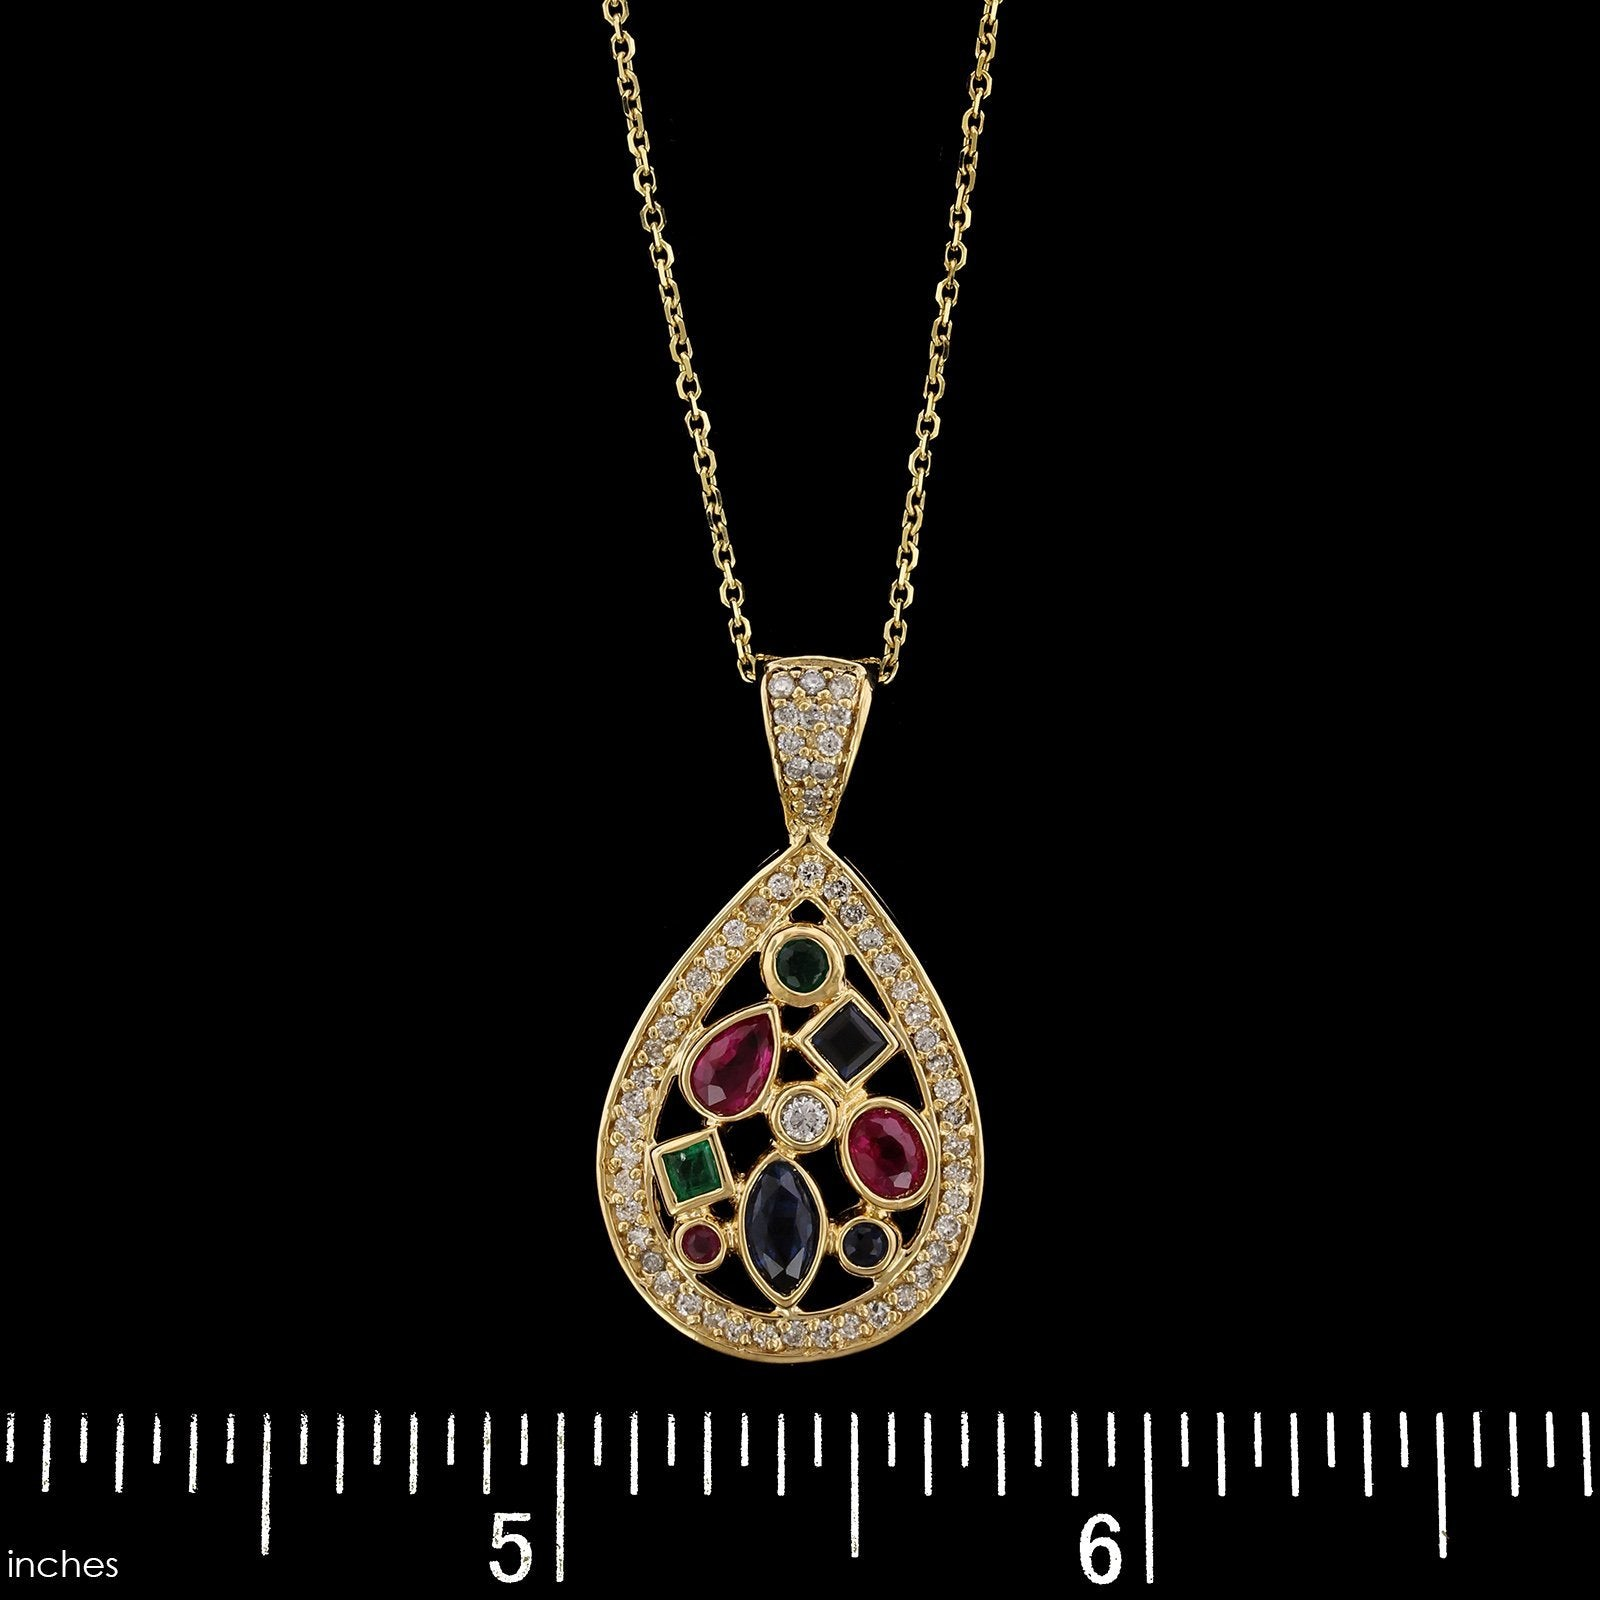 14K Yellow Gold Gem-set Pendant